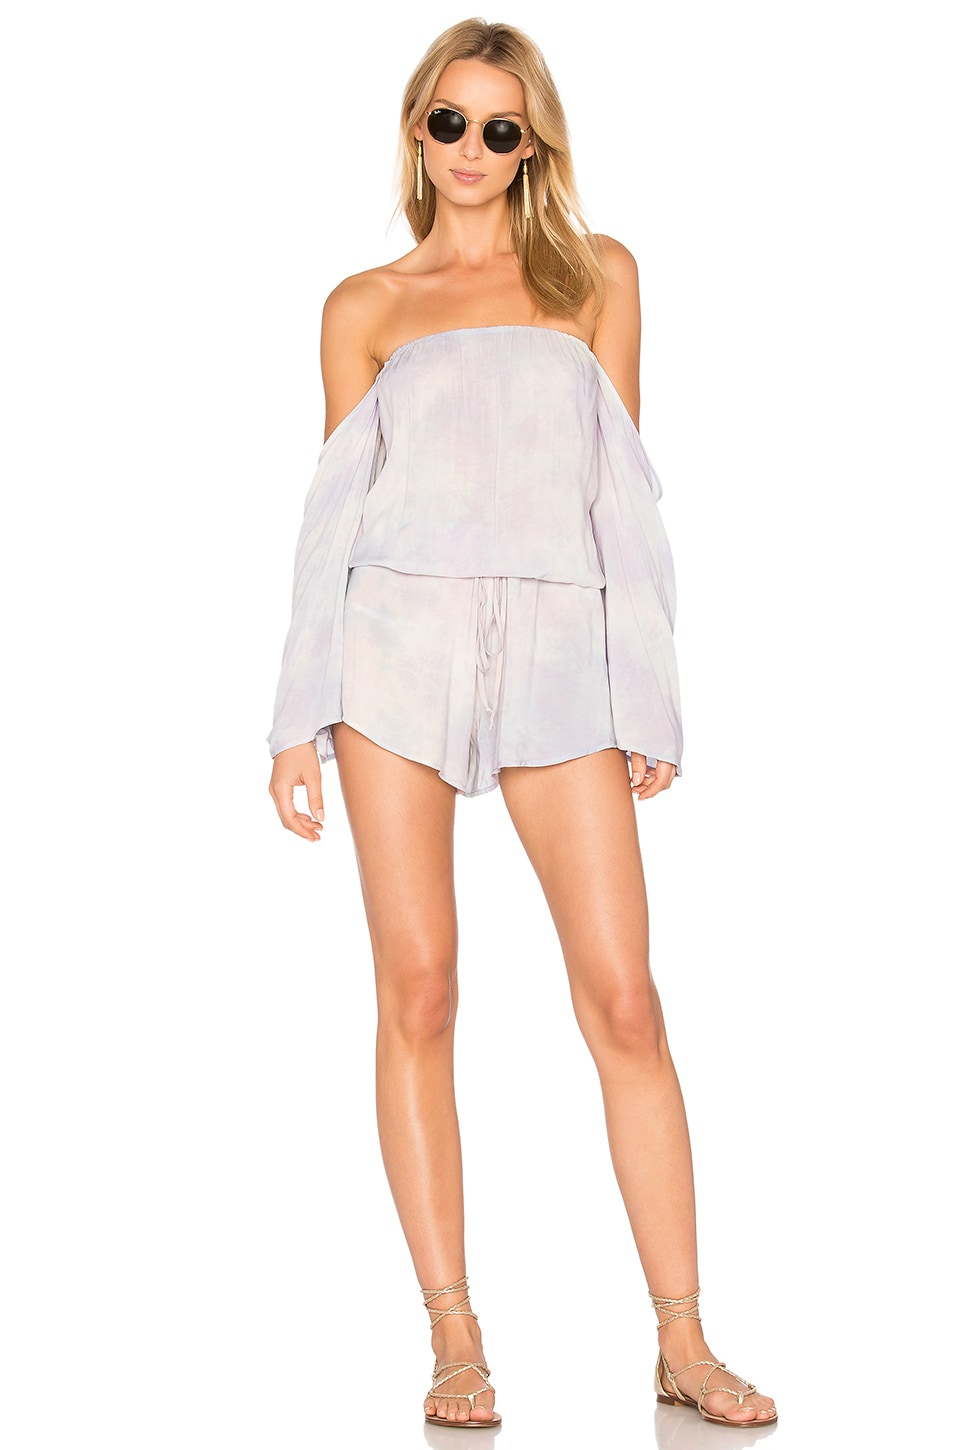 Life's A Beach Romper by Blue Life